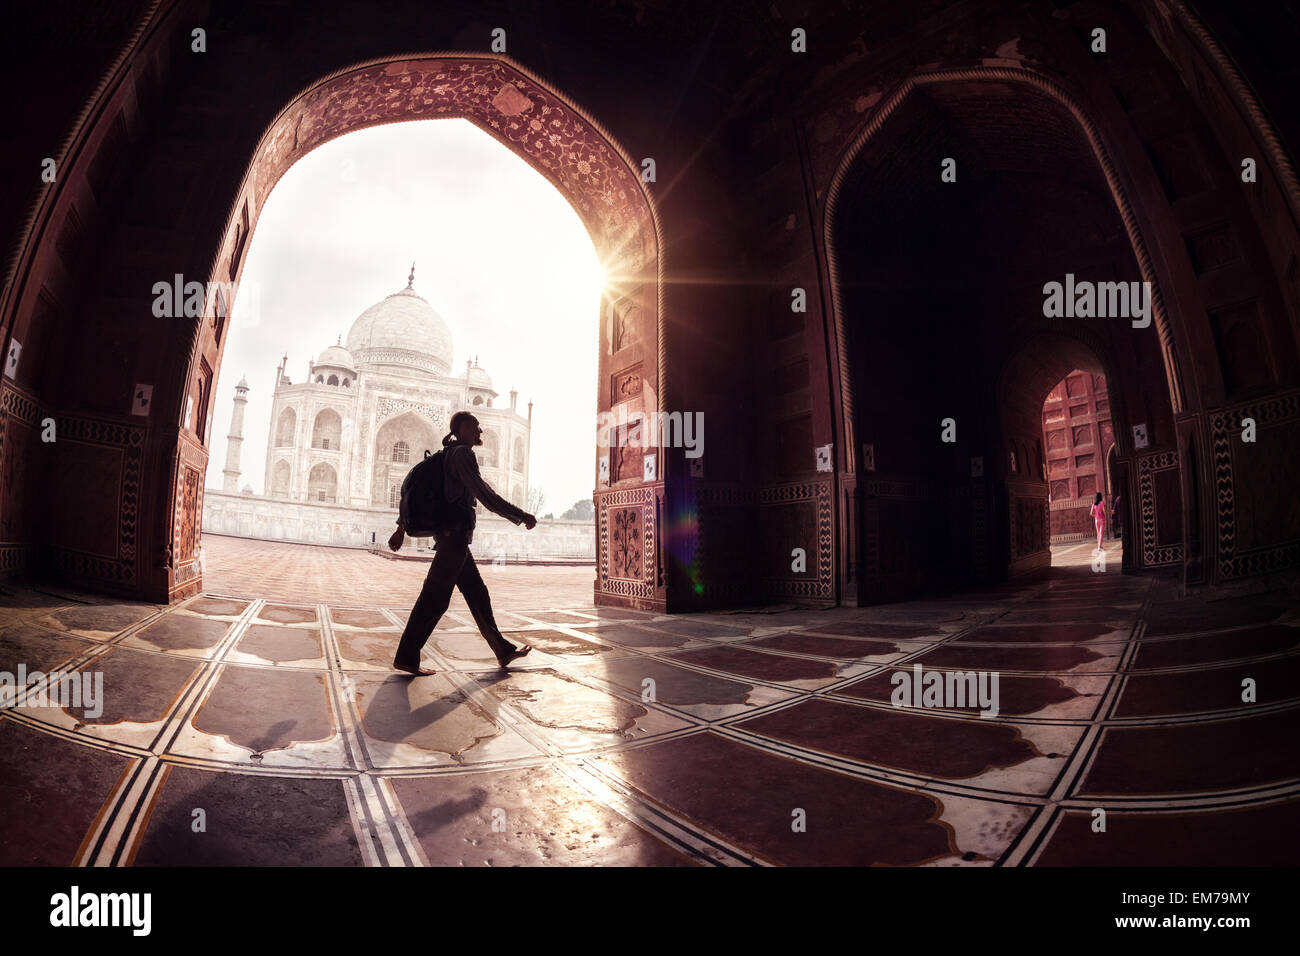 Tourist with backpack walking in the mosque arch near Taj Mahal in Agra, Uttar Pradesh, India - Stock Image